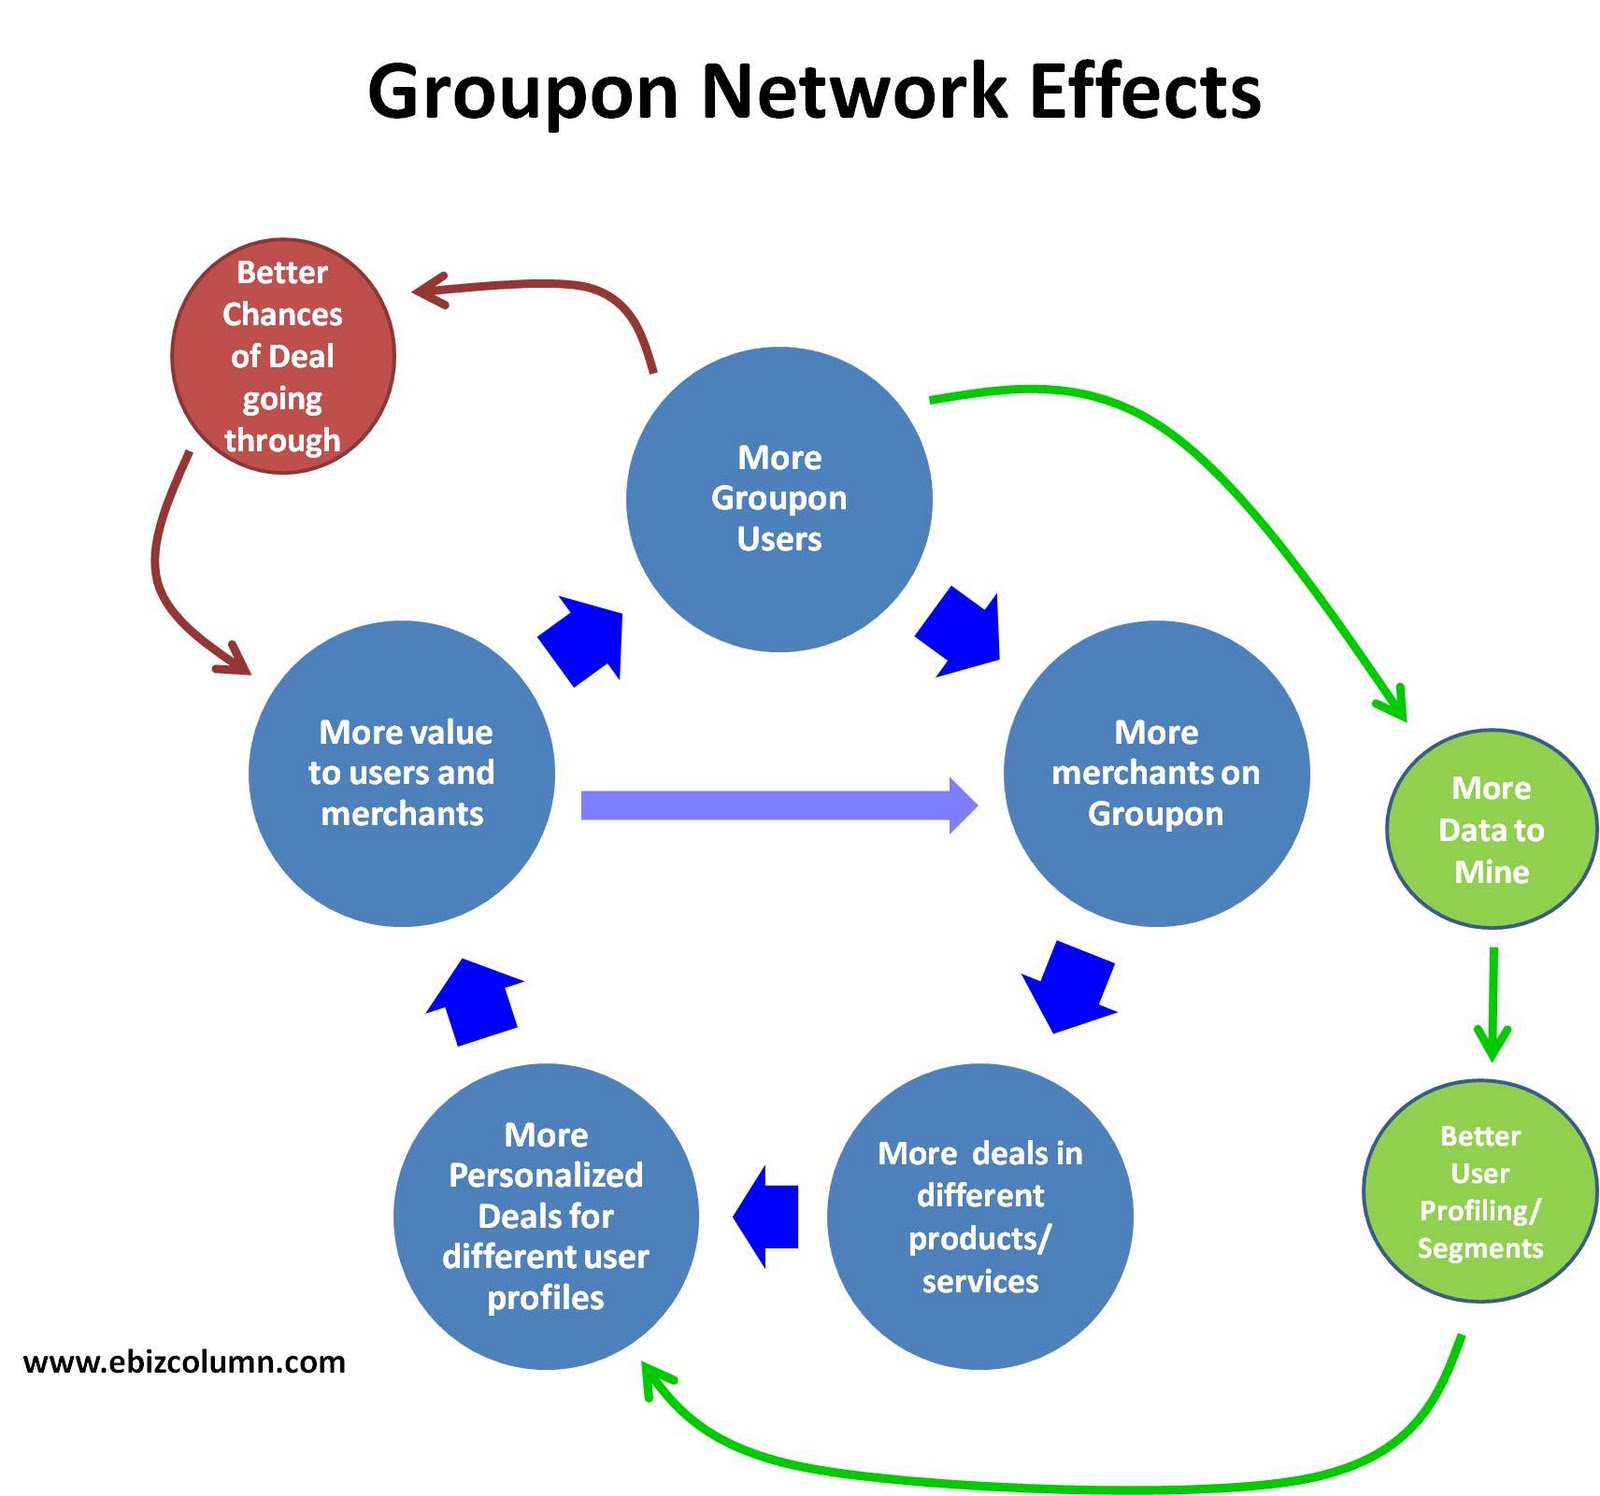 eBusiness Blog: Network Effects in Groupon Business Model